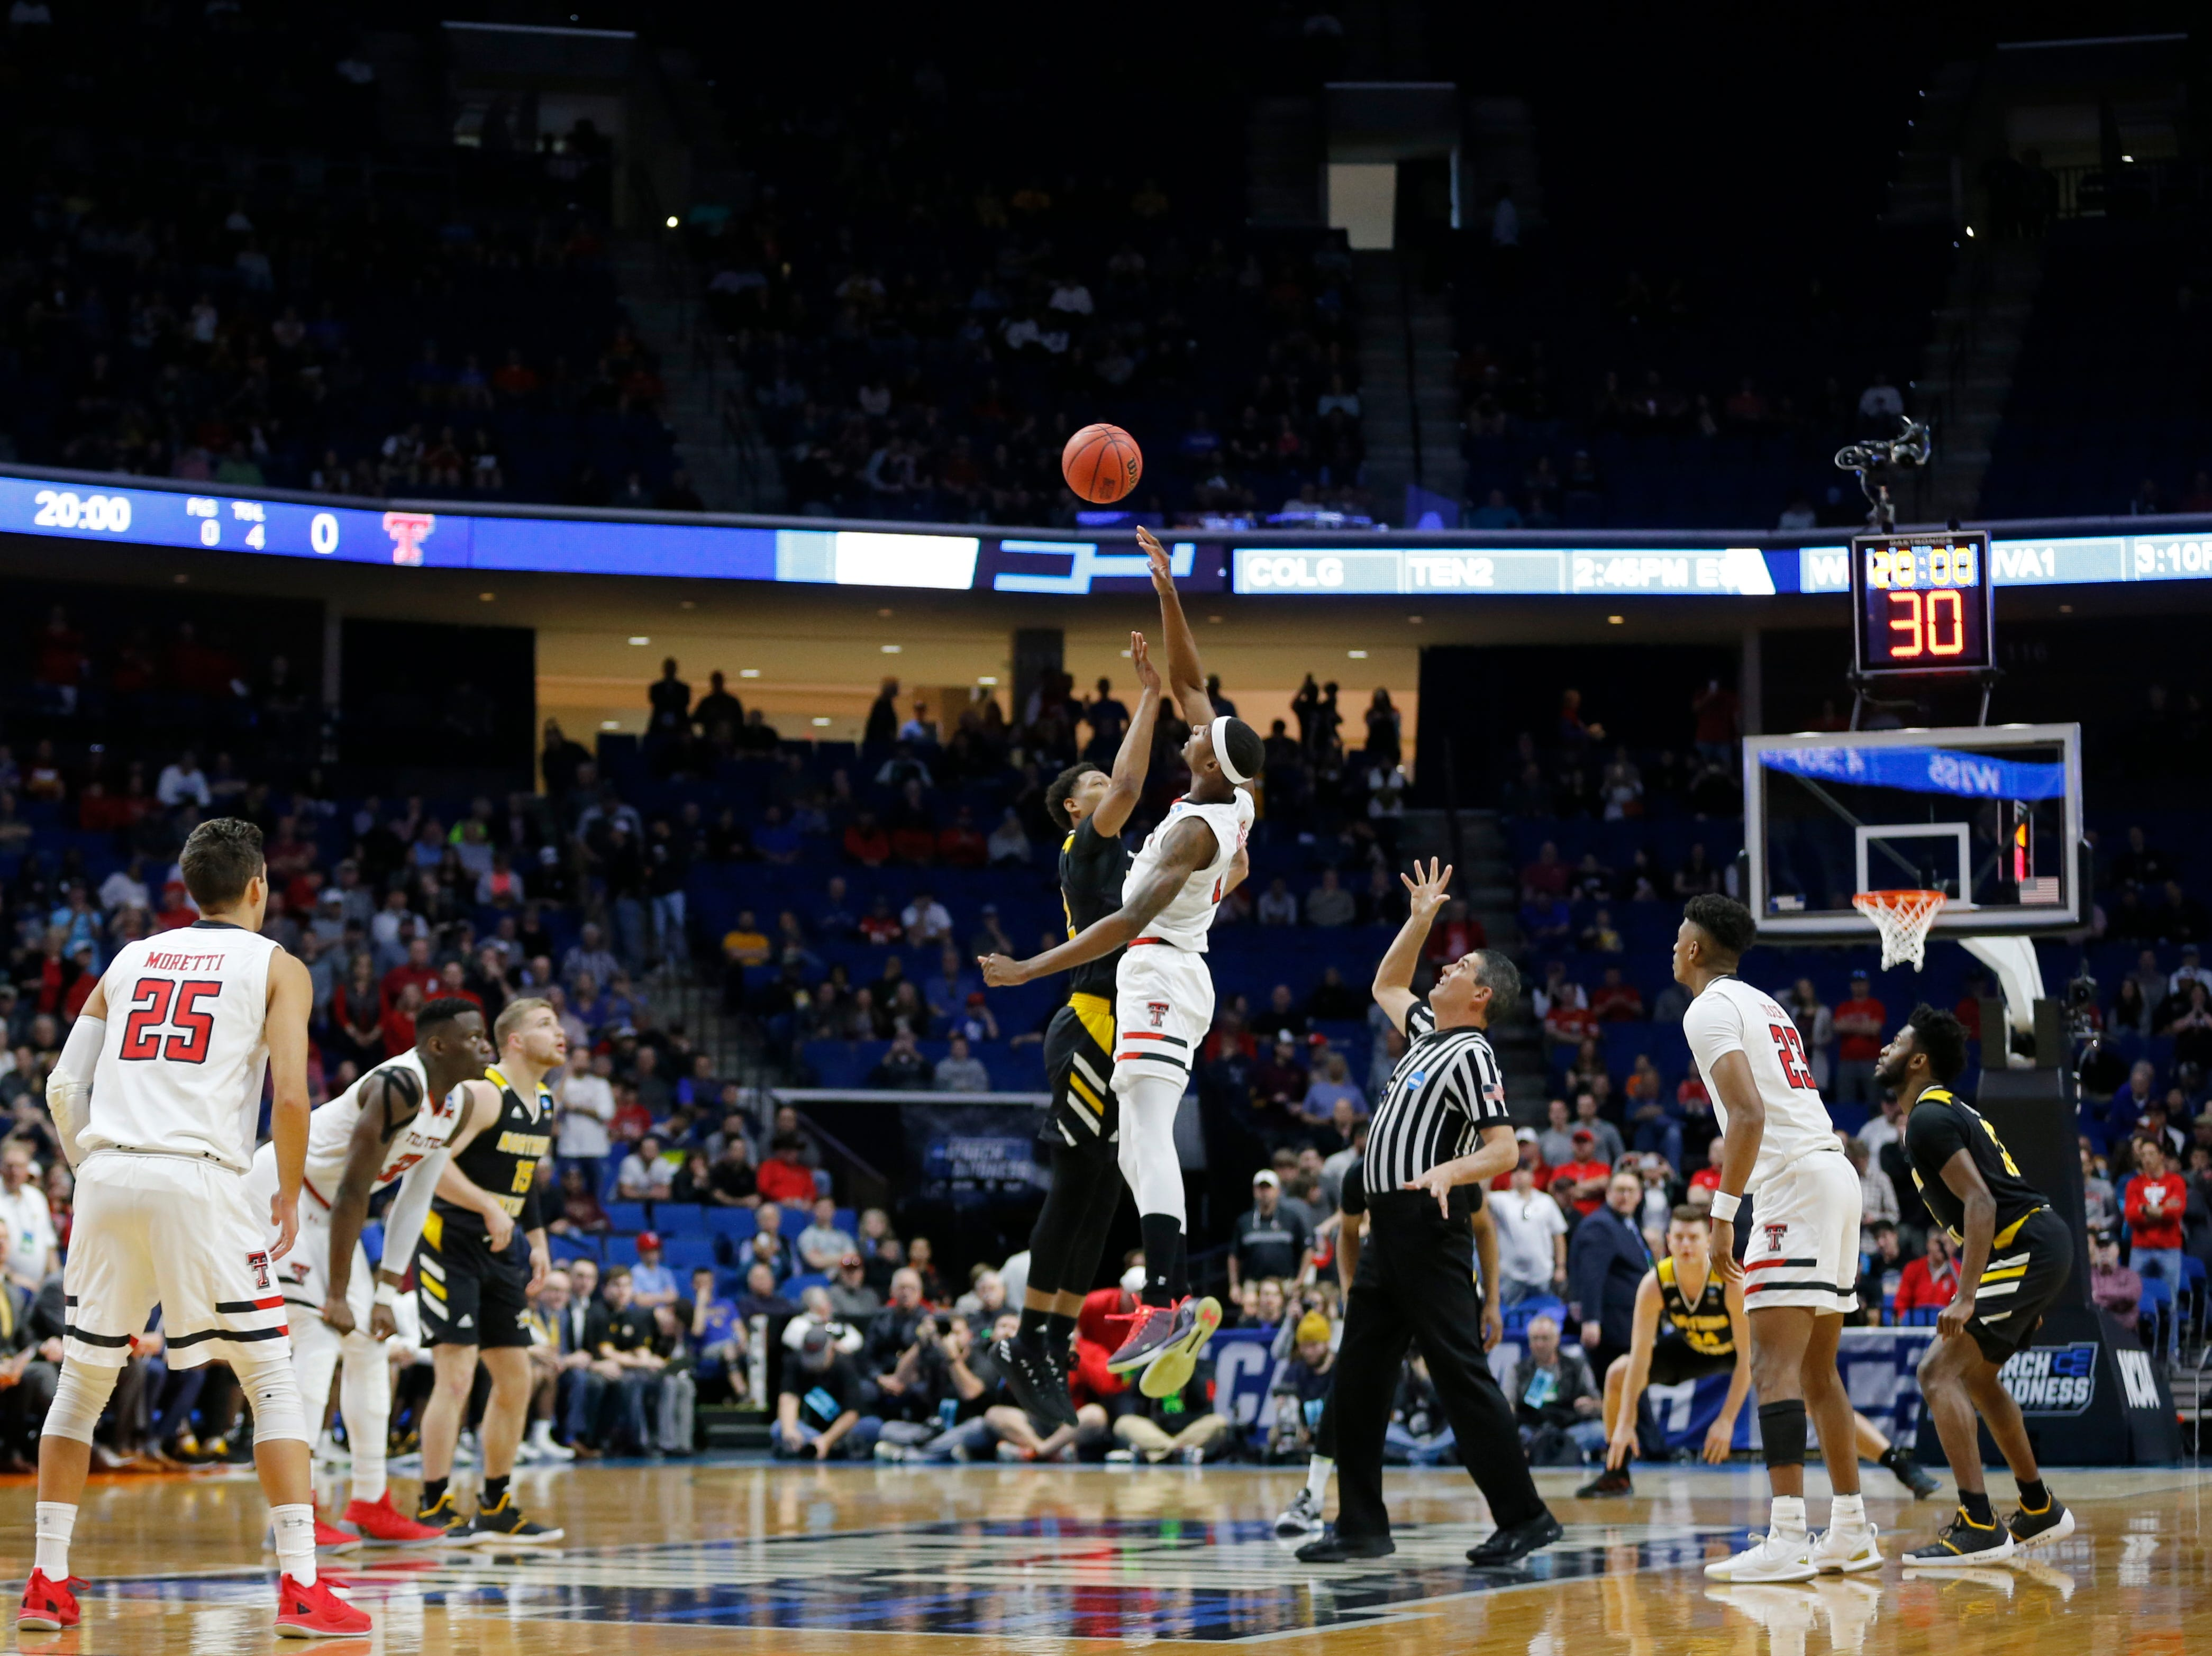 The opening tipoff in the first half of the NCAA Tournament First Round game between the 14-seeded Northern Kentucky Norse and the 3-seeded Texas Tech Red Raiders the BOK Center in downtown Tulsa on Friday, March 22, 2019. Texas Tech led 30-26 at halftime.